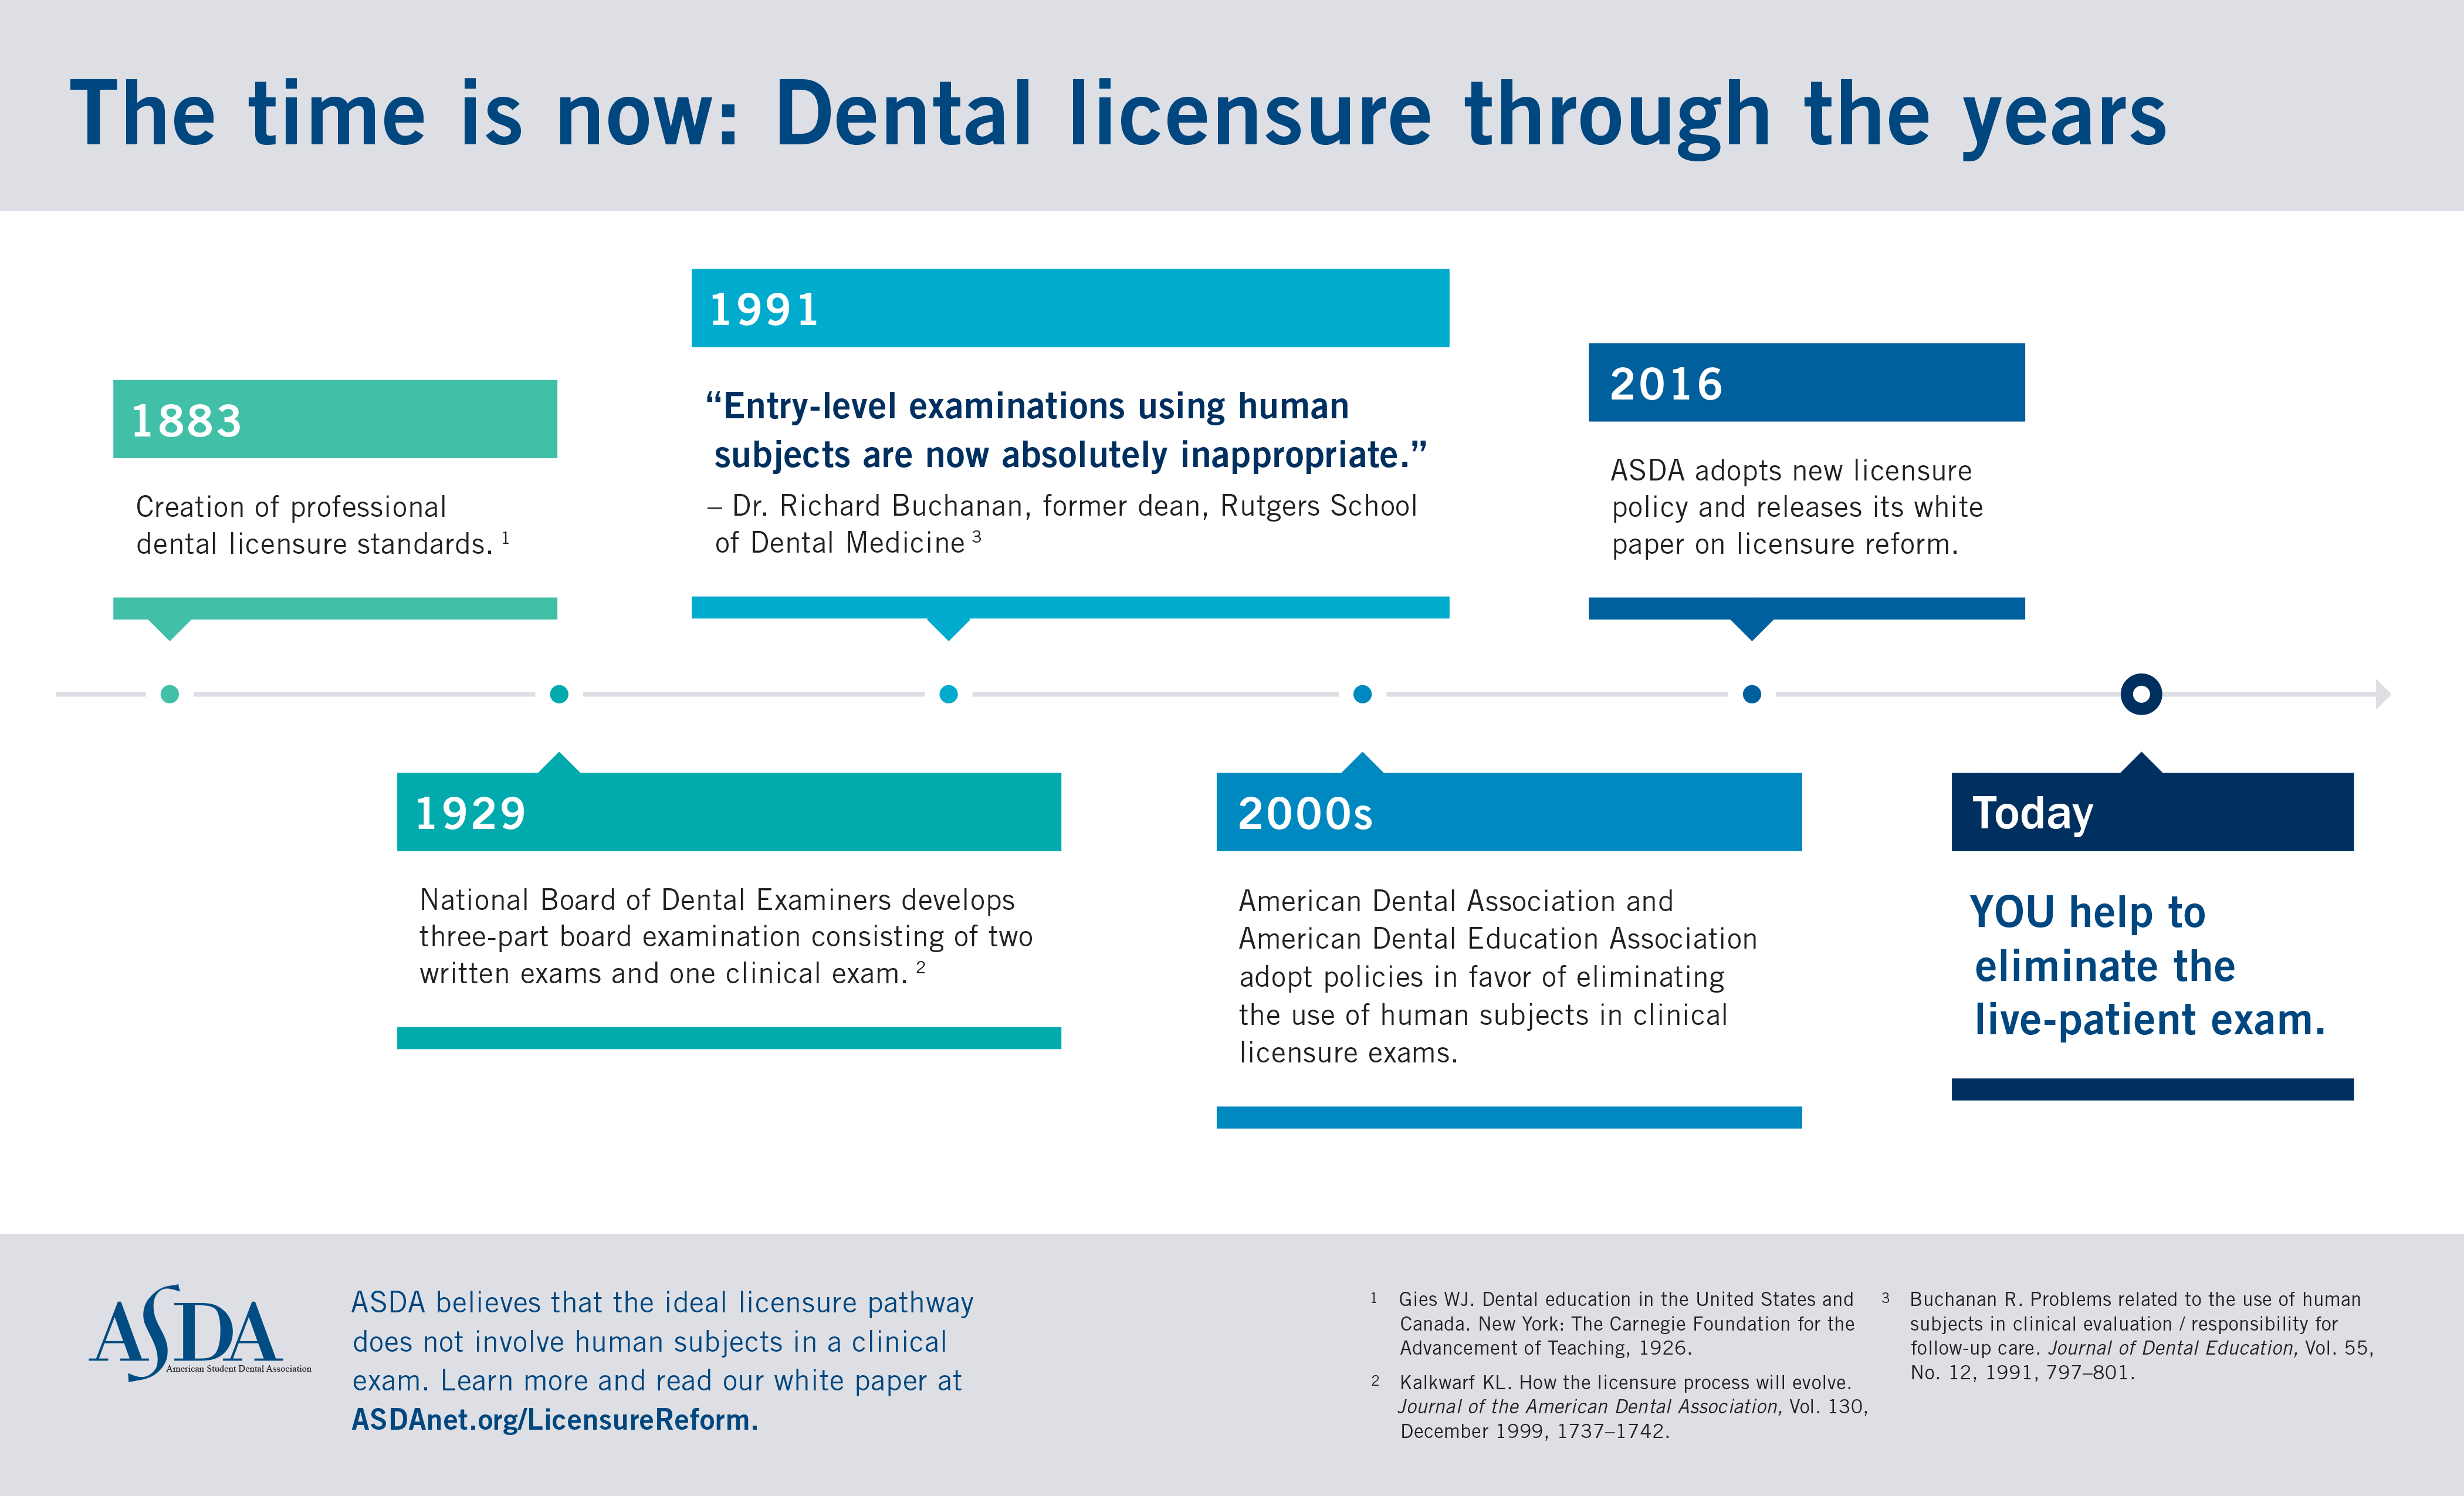 The Time is now: Dental Licensure through the years. Timeline shows a few highlighted events.